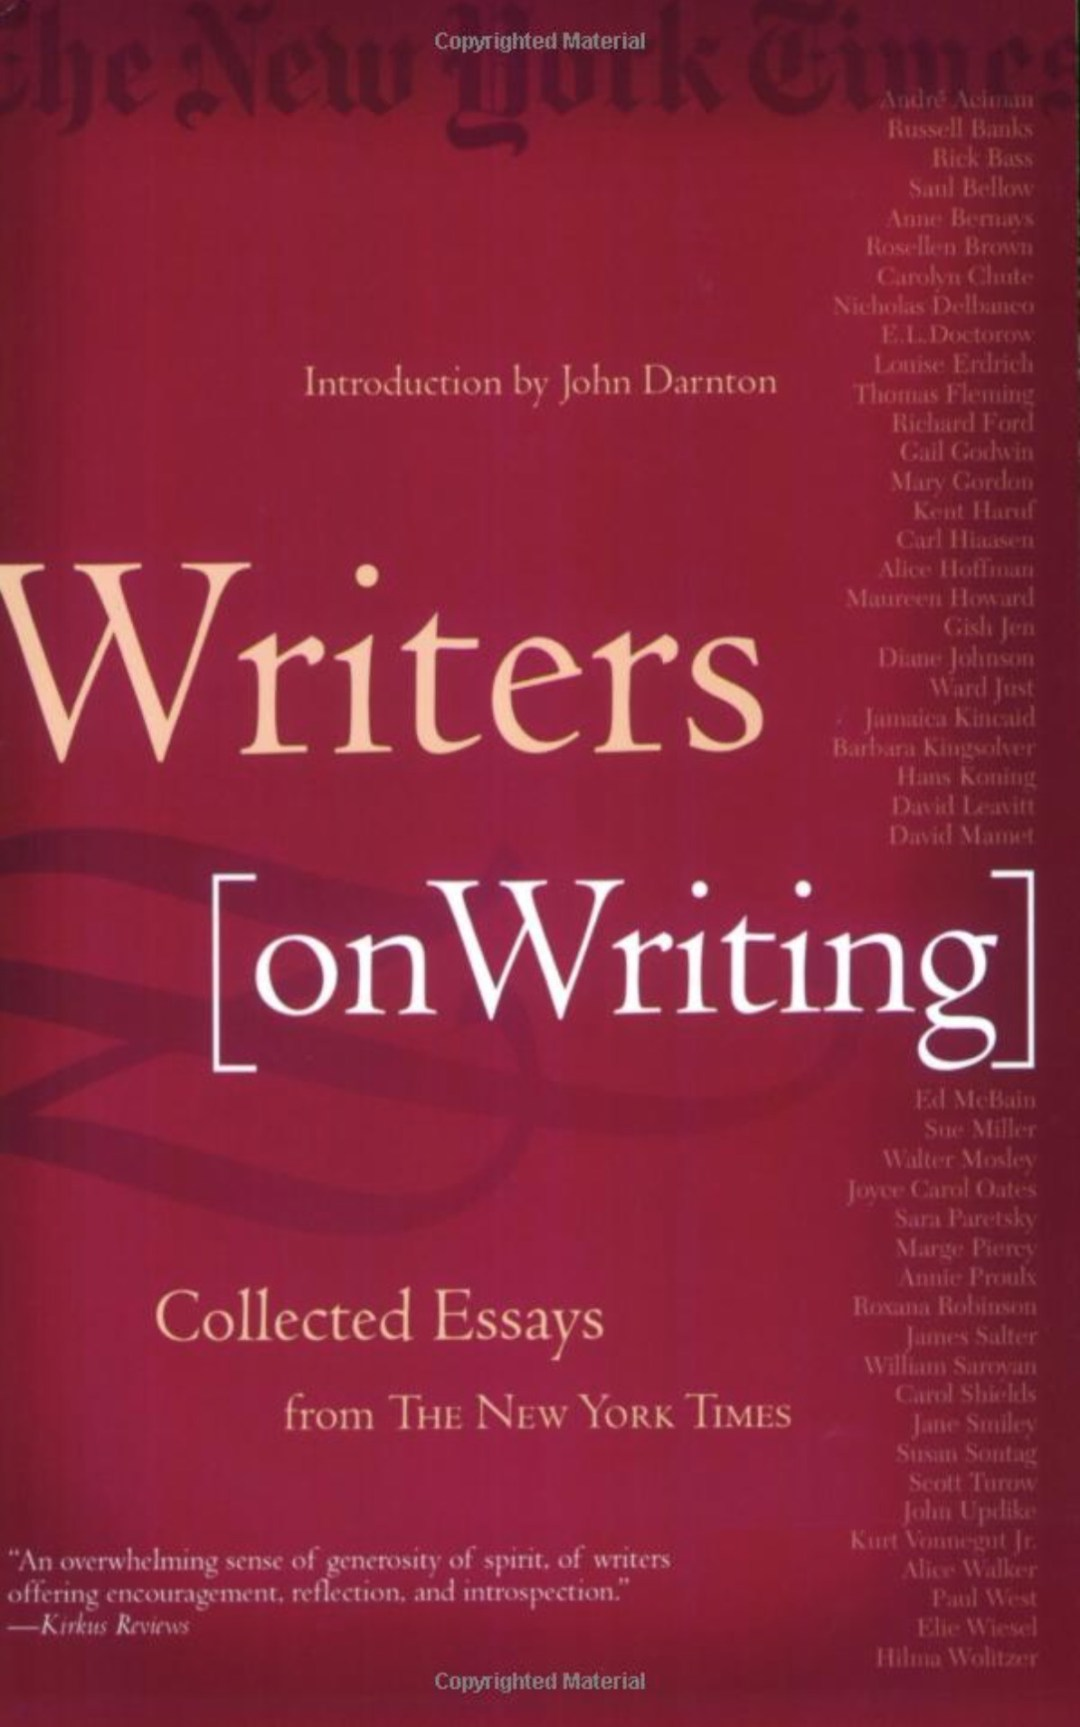 023 Collected Essays Essay Example Cover Writers On Rare The Journalism And Letters Of George Orwell Volume 3 Ralph Ellison Aldous Huxley Pdf Full